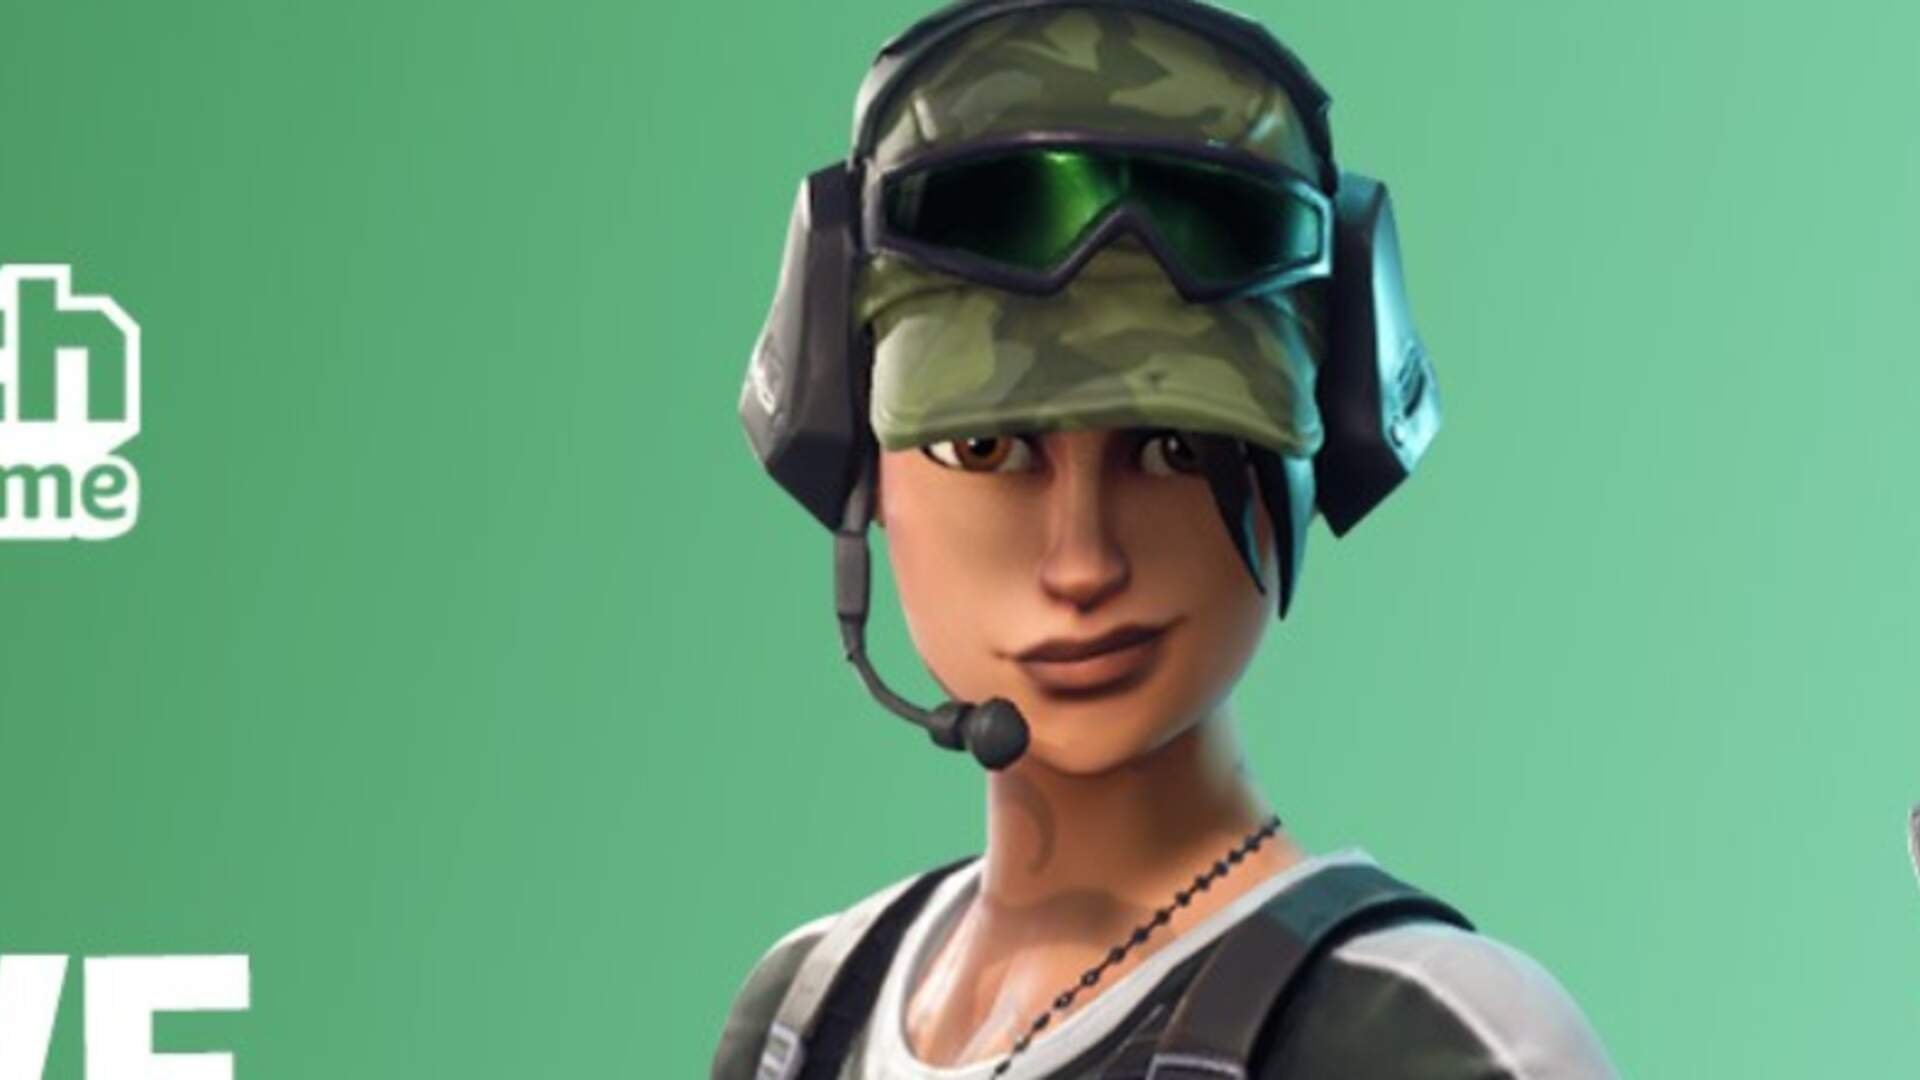 How to Claim the Free Fortnite Twitch Prime Pack 2 Loot and Skin